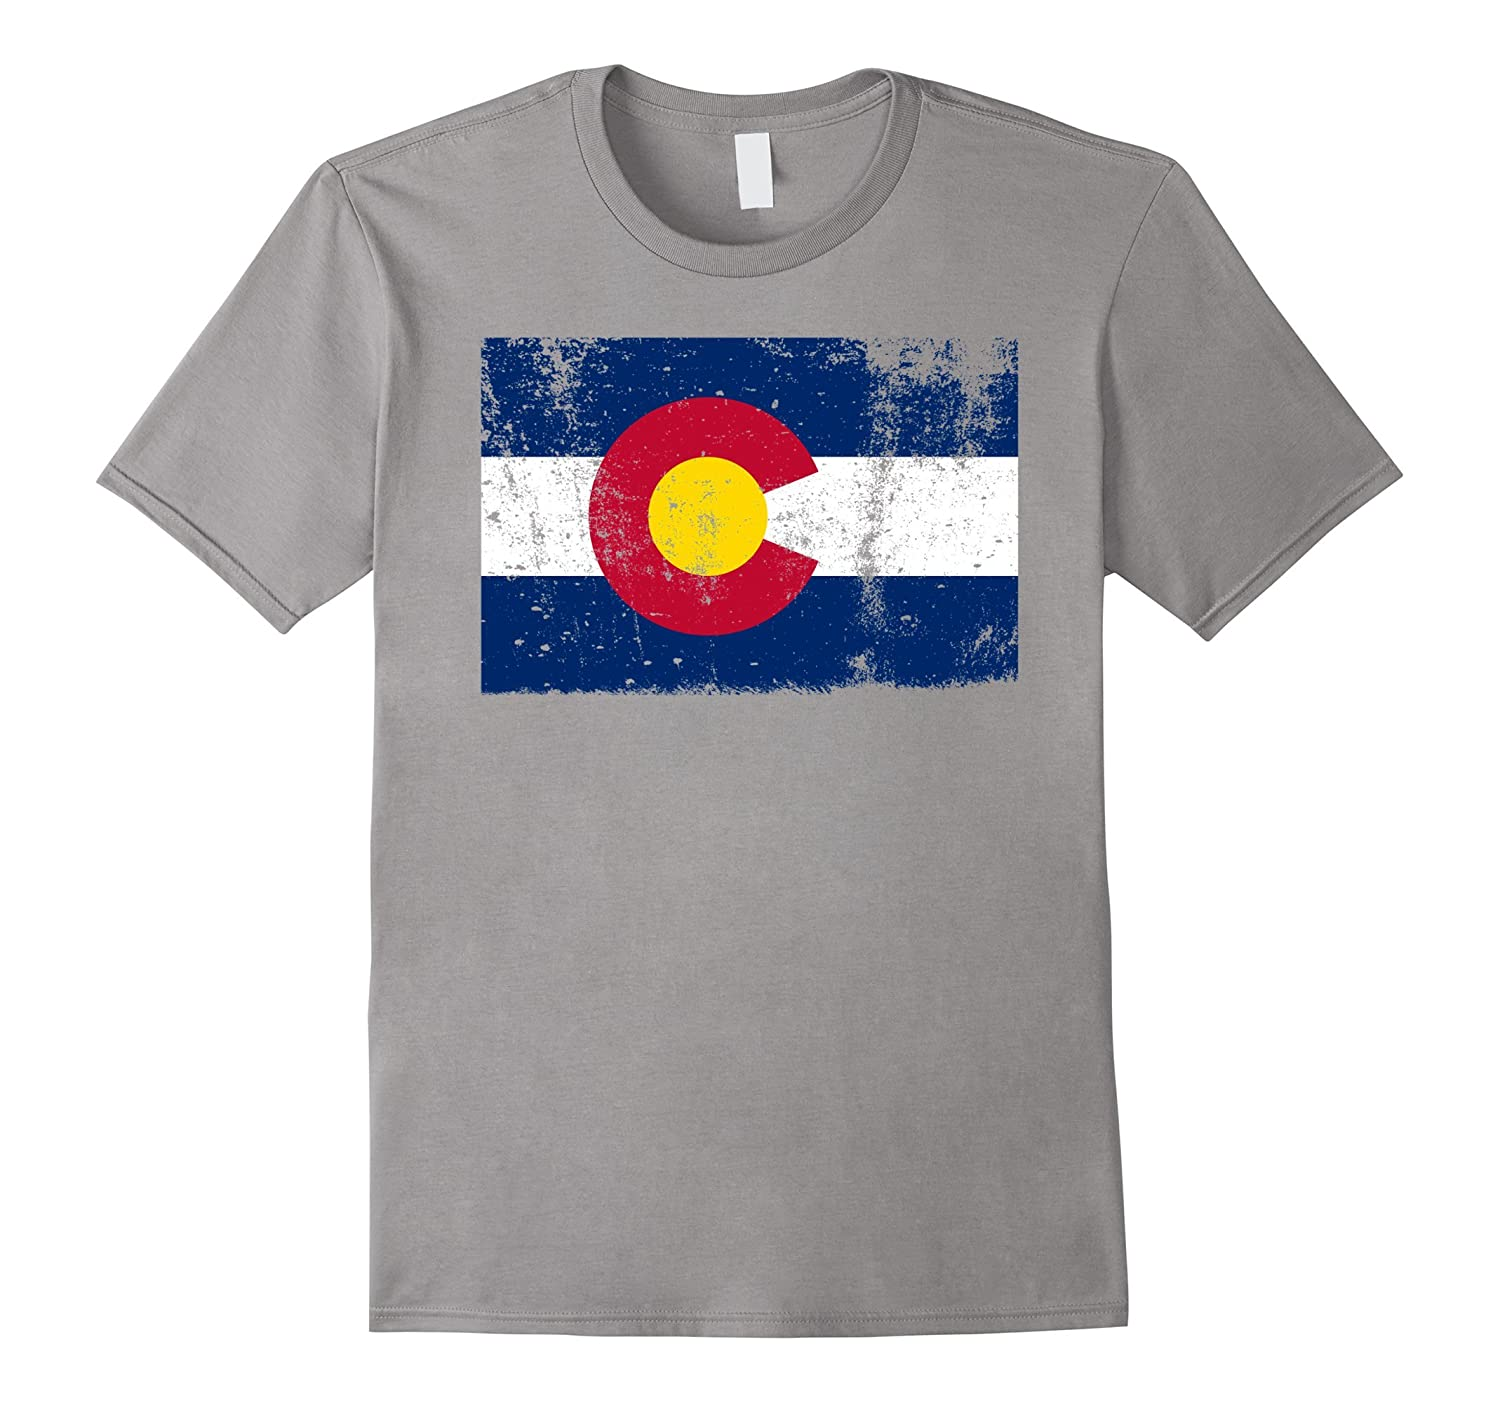 Colorado State Flag T-Shirt Distressed Fun Vintage Retro-PL